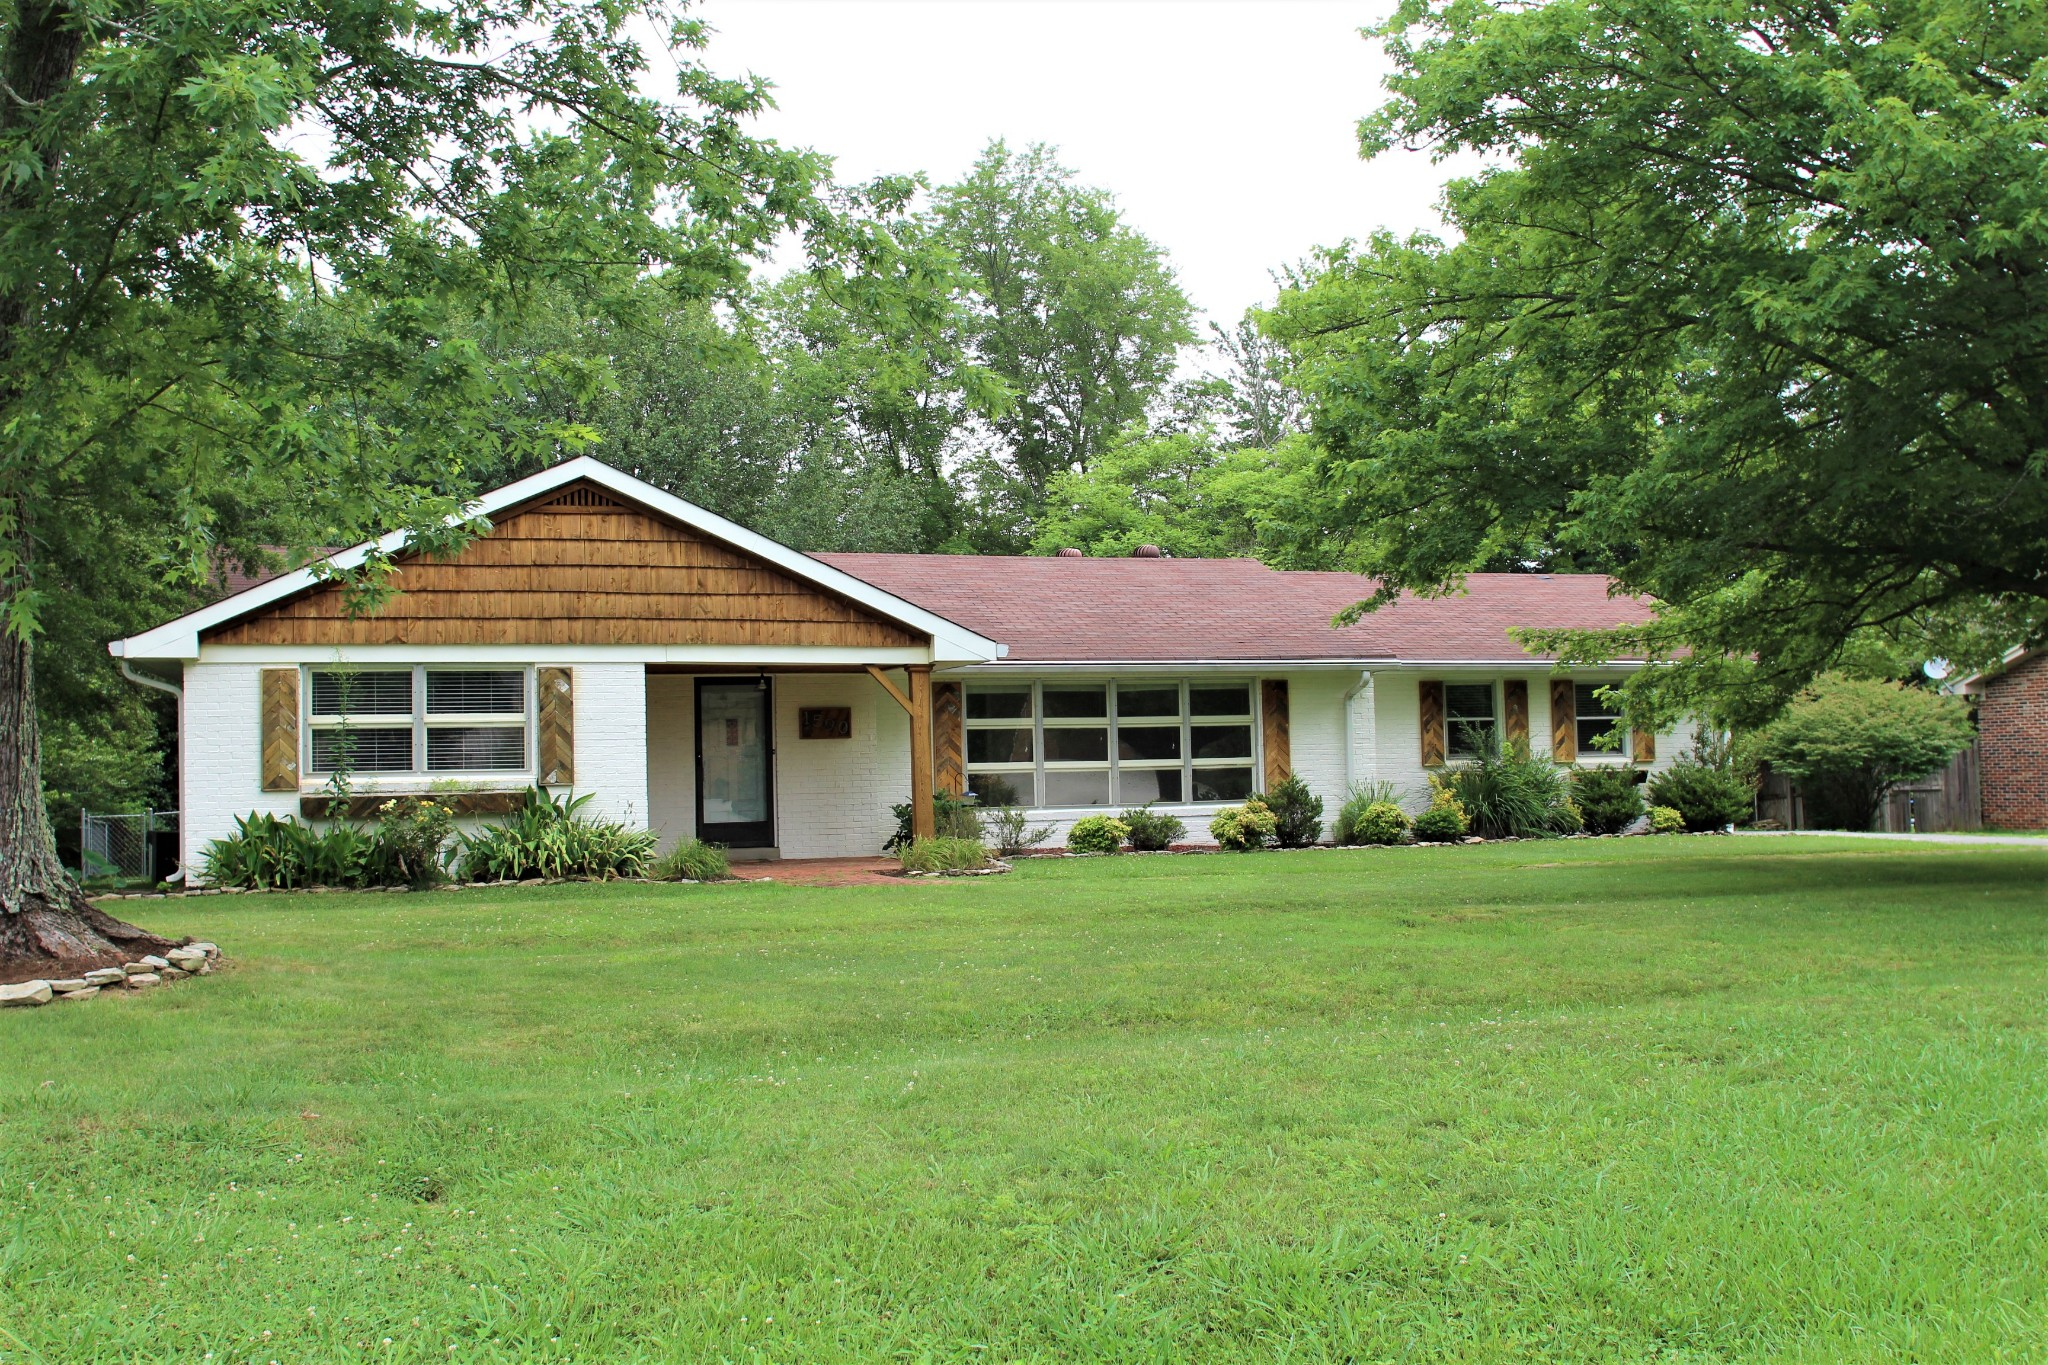 1590 Bennie Dr, Cookeville, TN 38501 - Cookeville, TN real estate listing